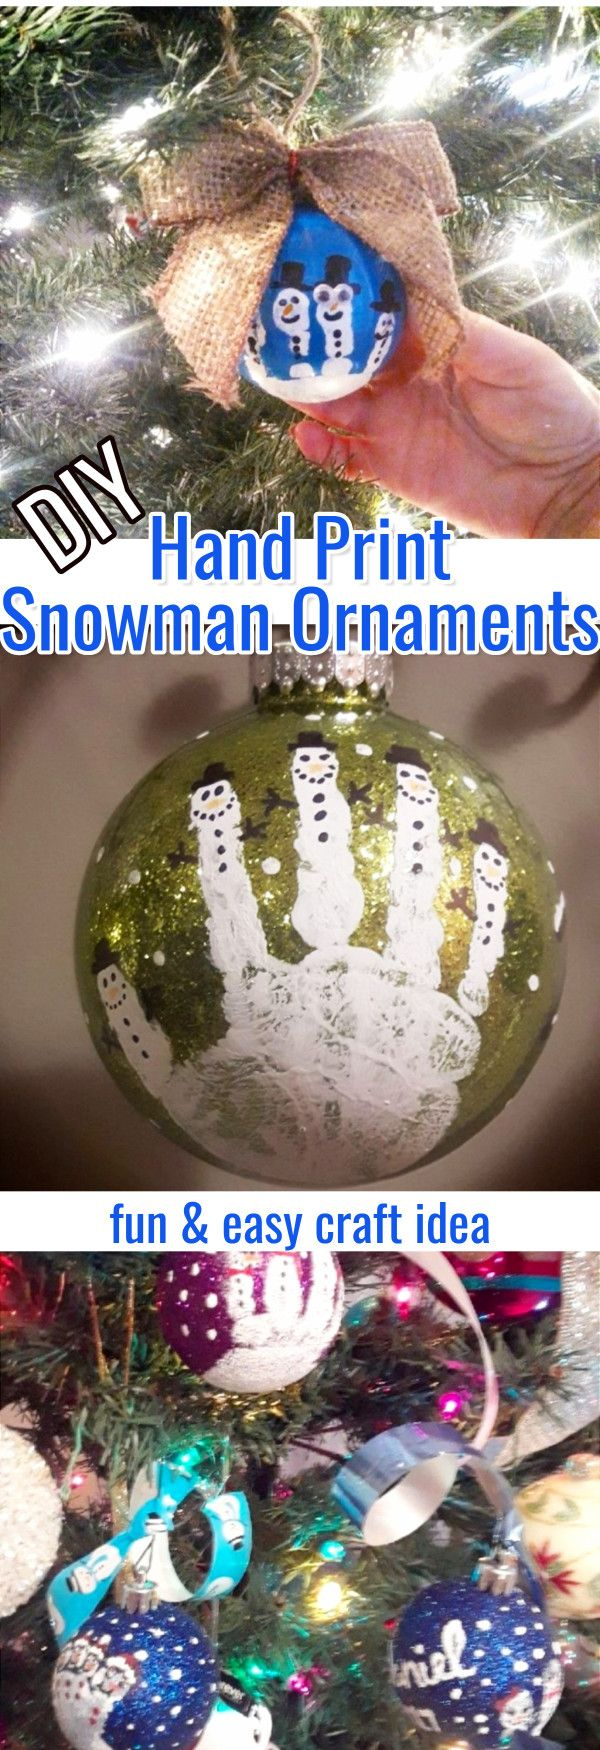 Easy Hand Print Christmas Ornaments To Make - DIY Christmas Ornaments • Family Fingerprint Ornament • Easy Christmas Ornaments to Make • DIY XMas Ornaments • DIY Christmas Crafts • Hand Print Snowman Ornaments • DIY Ornaments for Grandparents • Kids Christmas Crafts